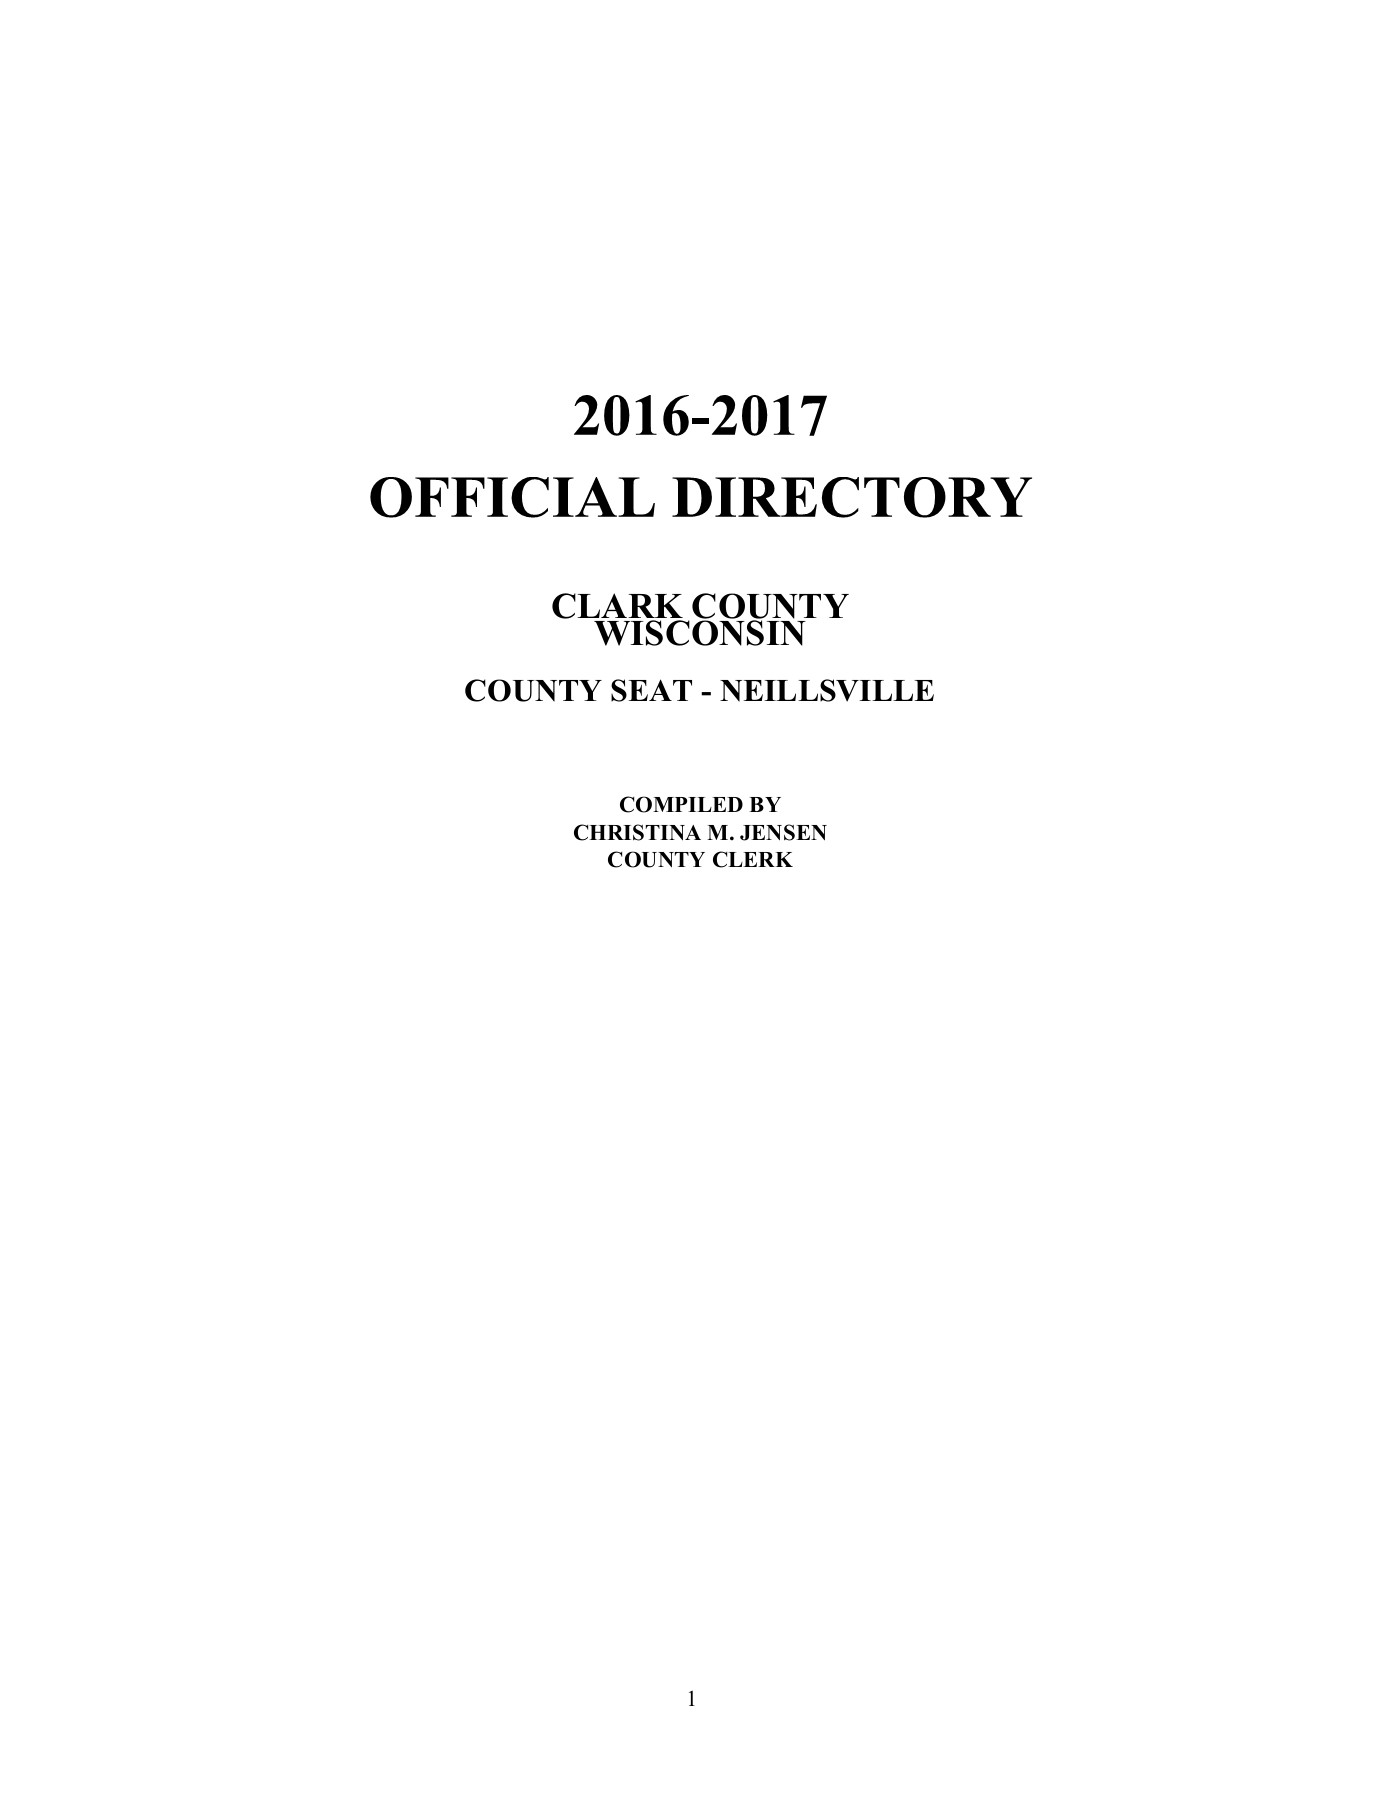 OFFICIAL DIRECTORY 201 6-201 7 Pages 1 - 50 - Text Version | AnyFlip